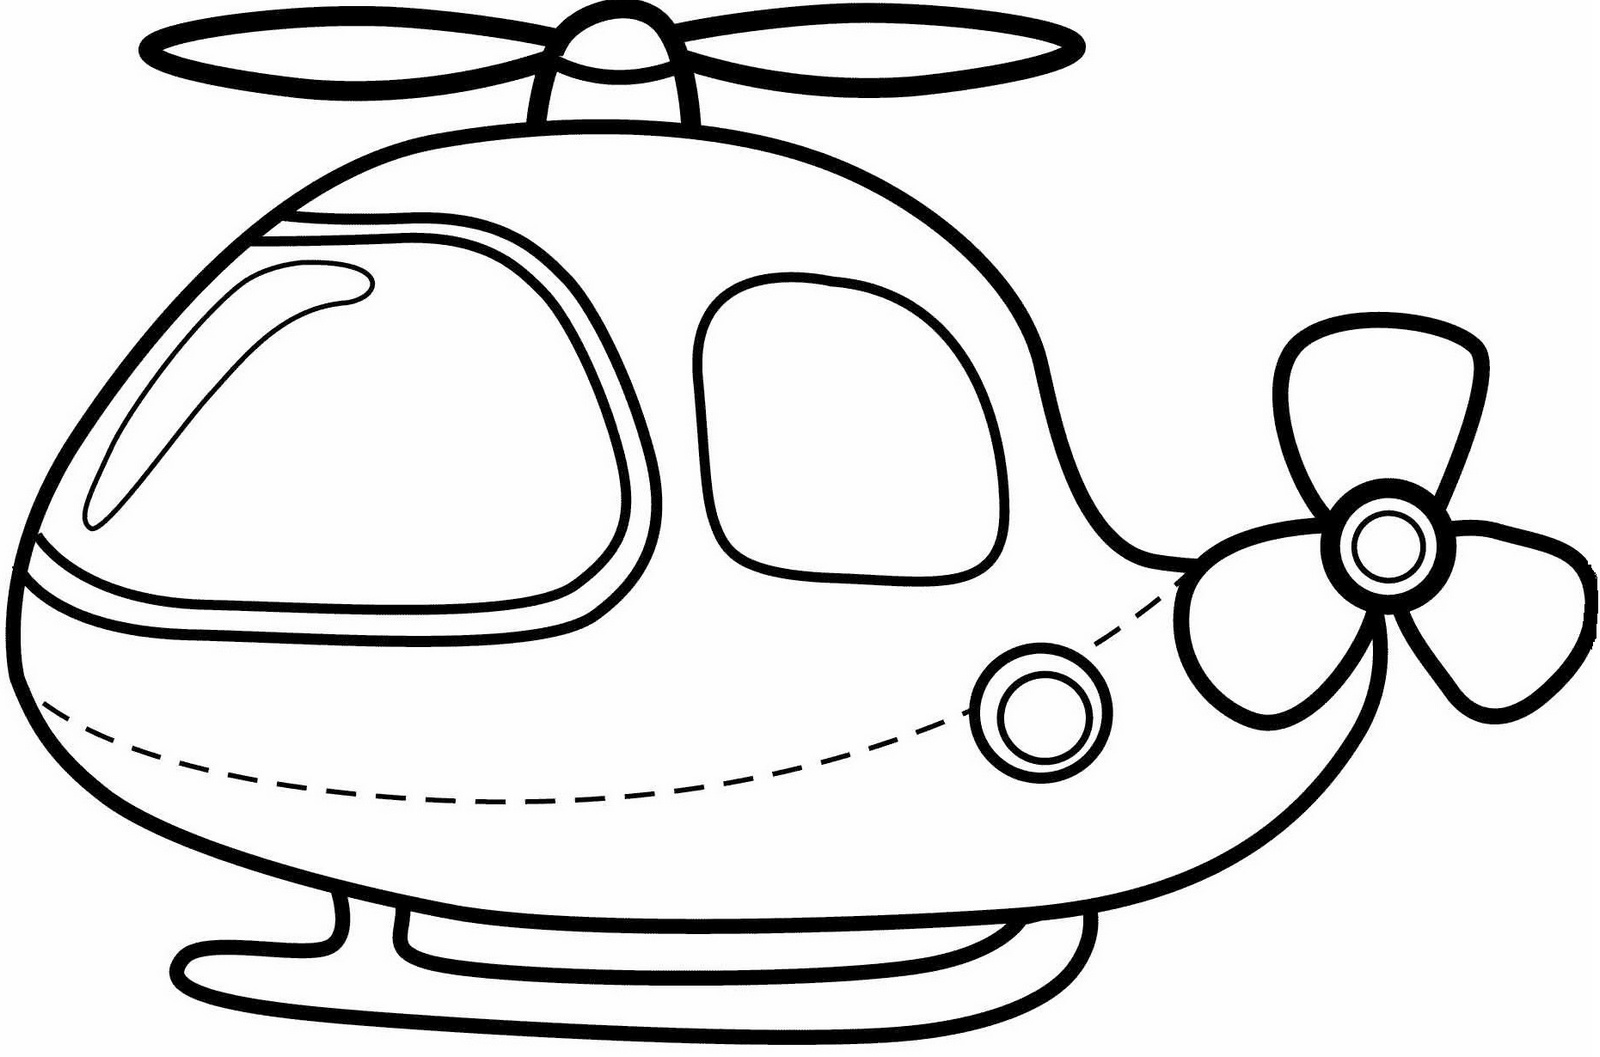 helicopter colouring pictures helicopter coloring pages easy and realistic pages colouring pictures helicopter